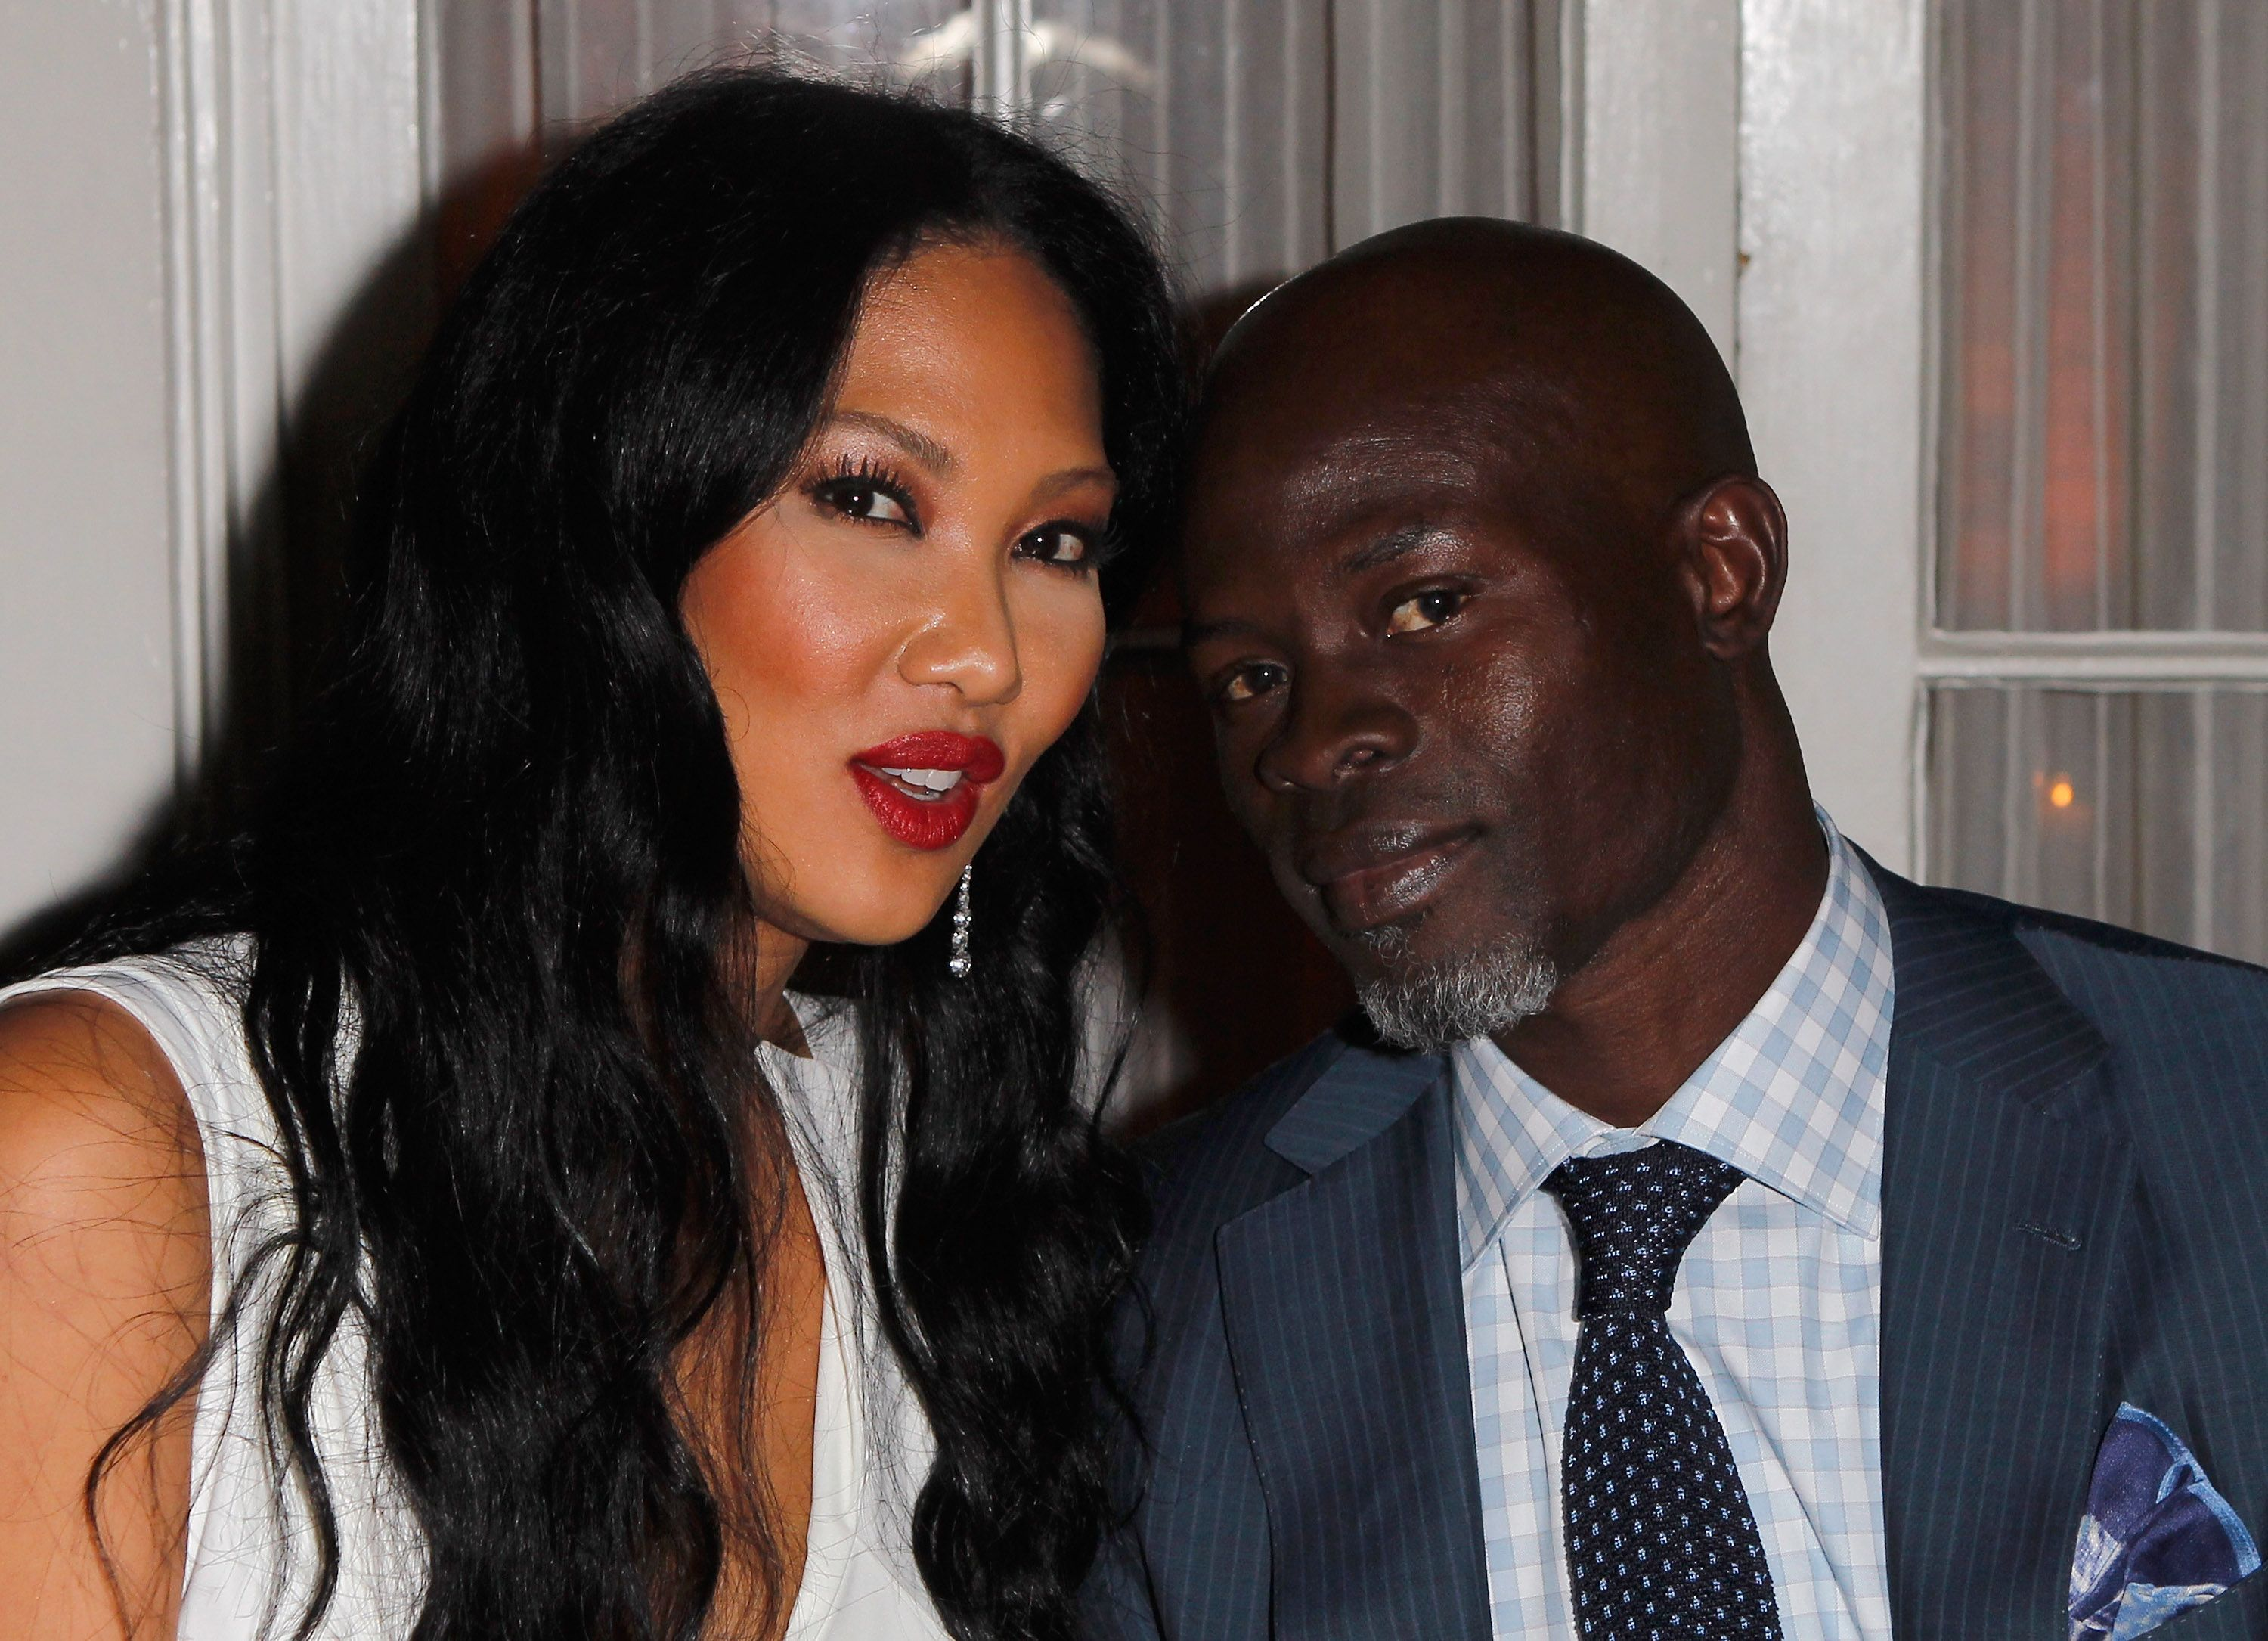 Kimora Lee Simmons and Djimon Hounsou at the Vanity Fair and Ermenegildo Zegna Dinner on February 22, 2012 in Los Angeles. | Photo: Getty Images